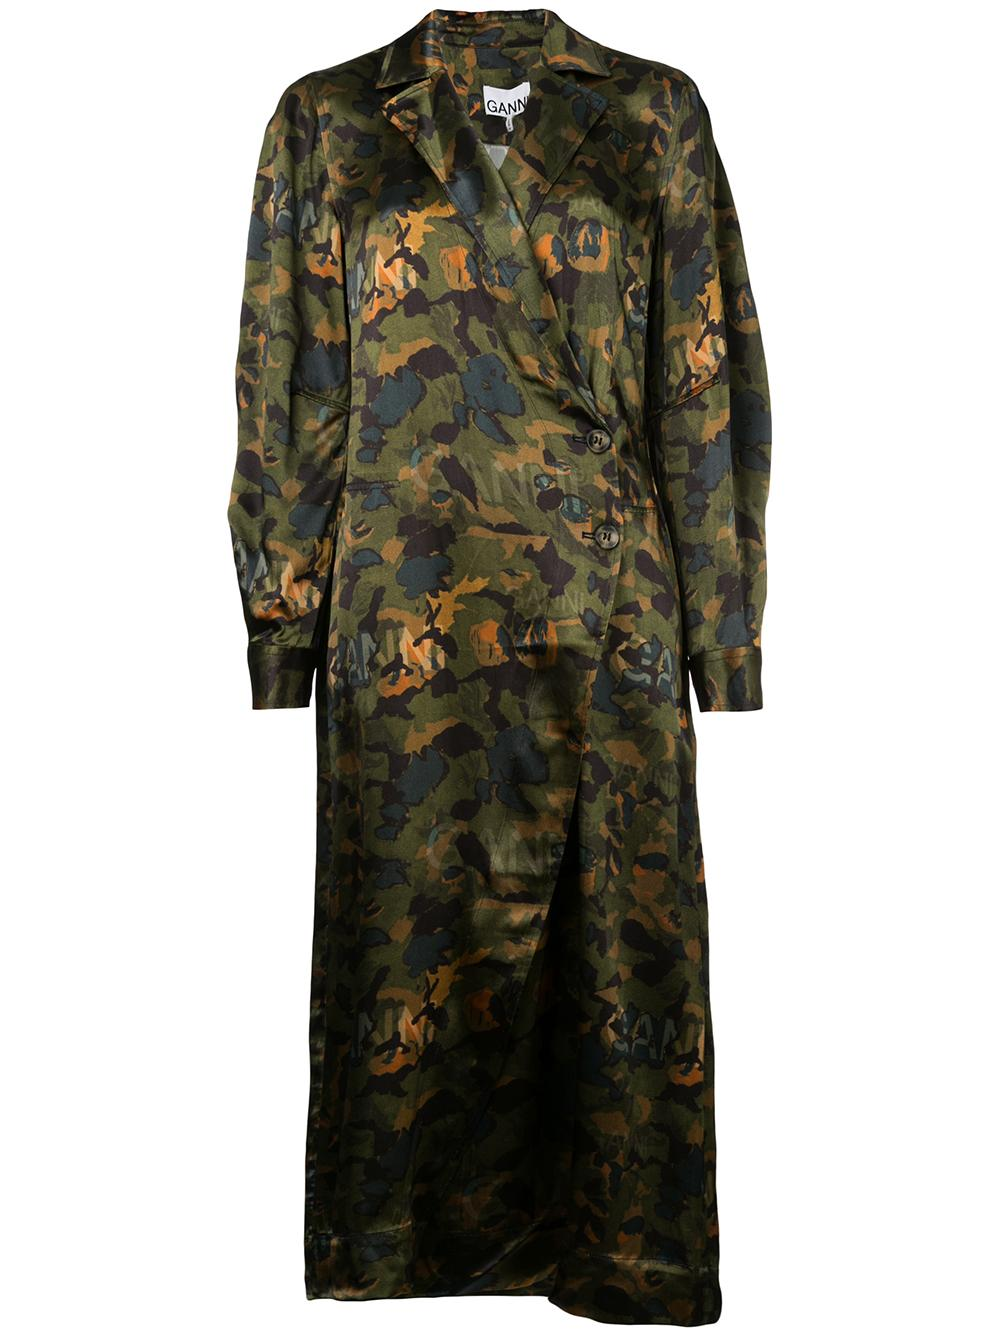 Camo Maxi Duster Dress With Tie Belt Item # F3802